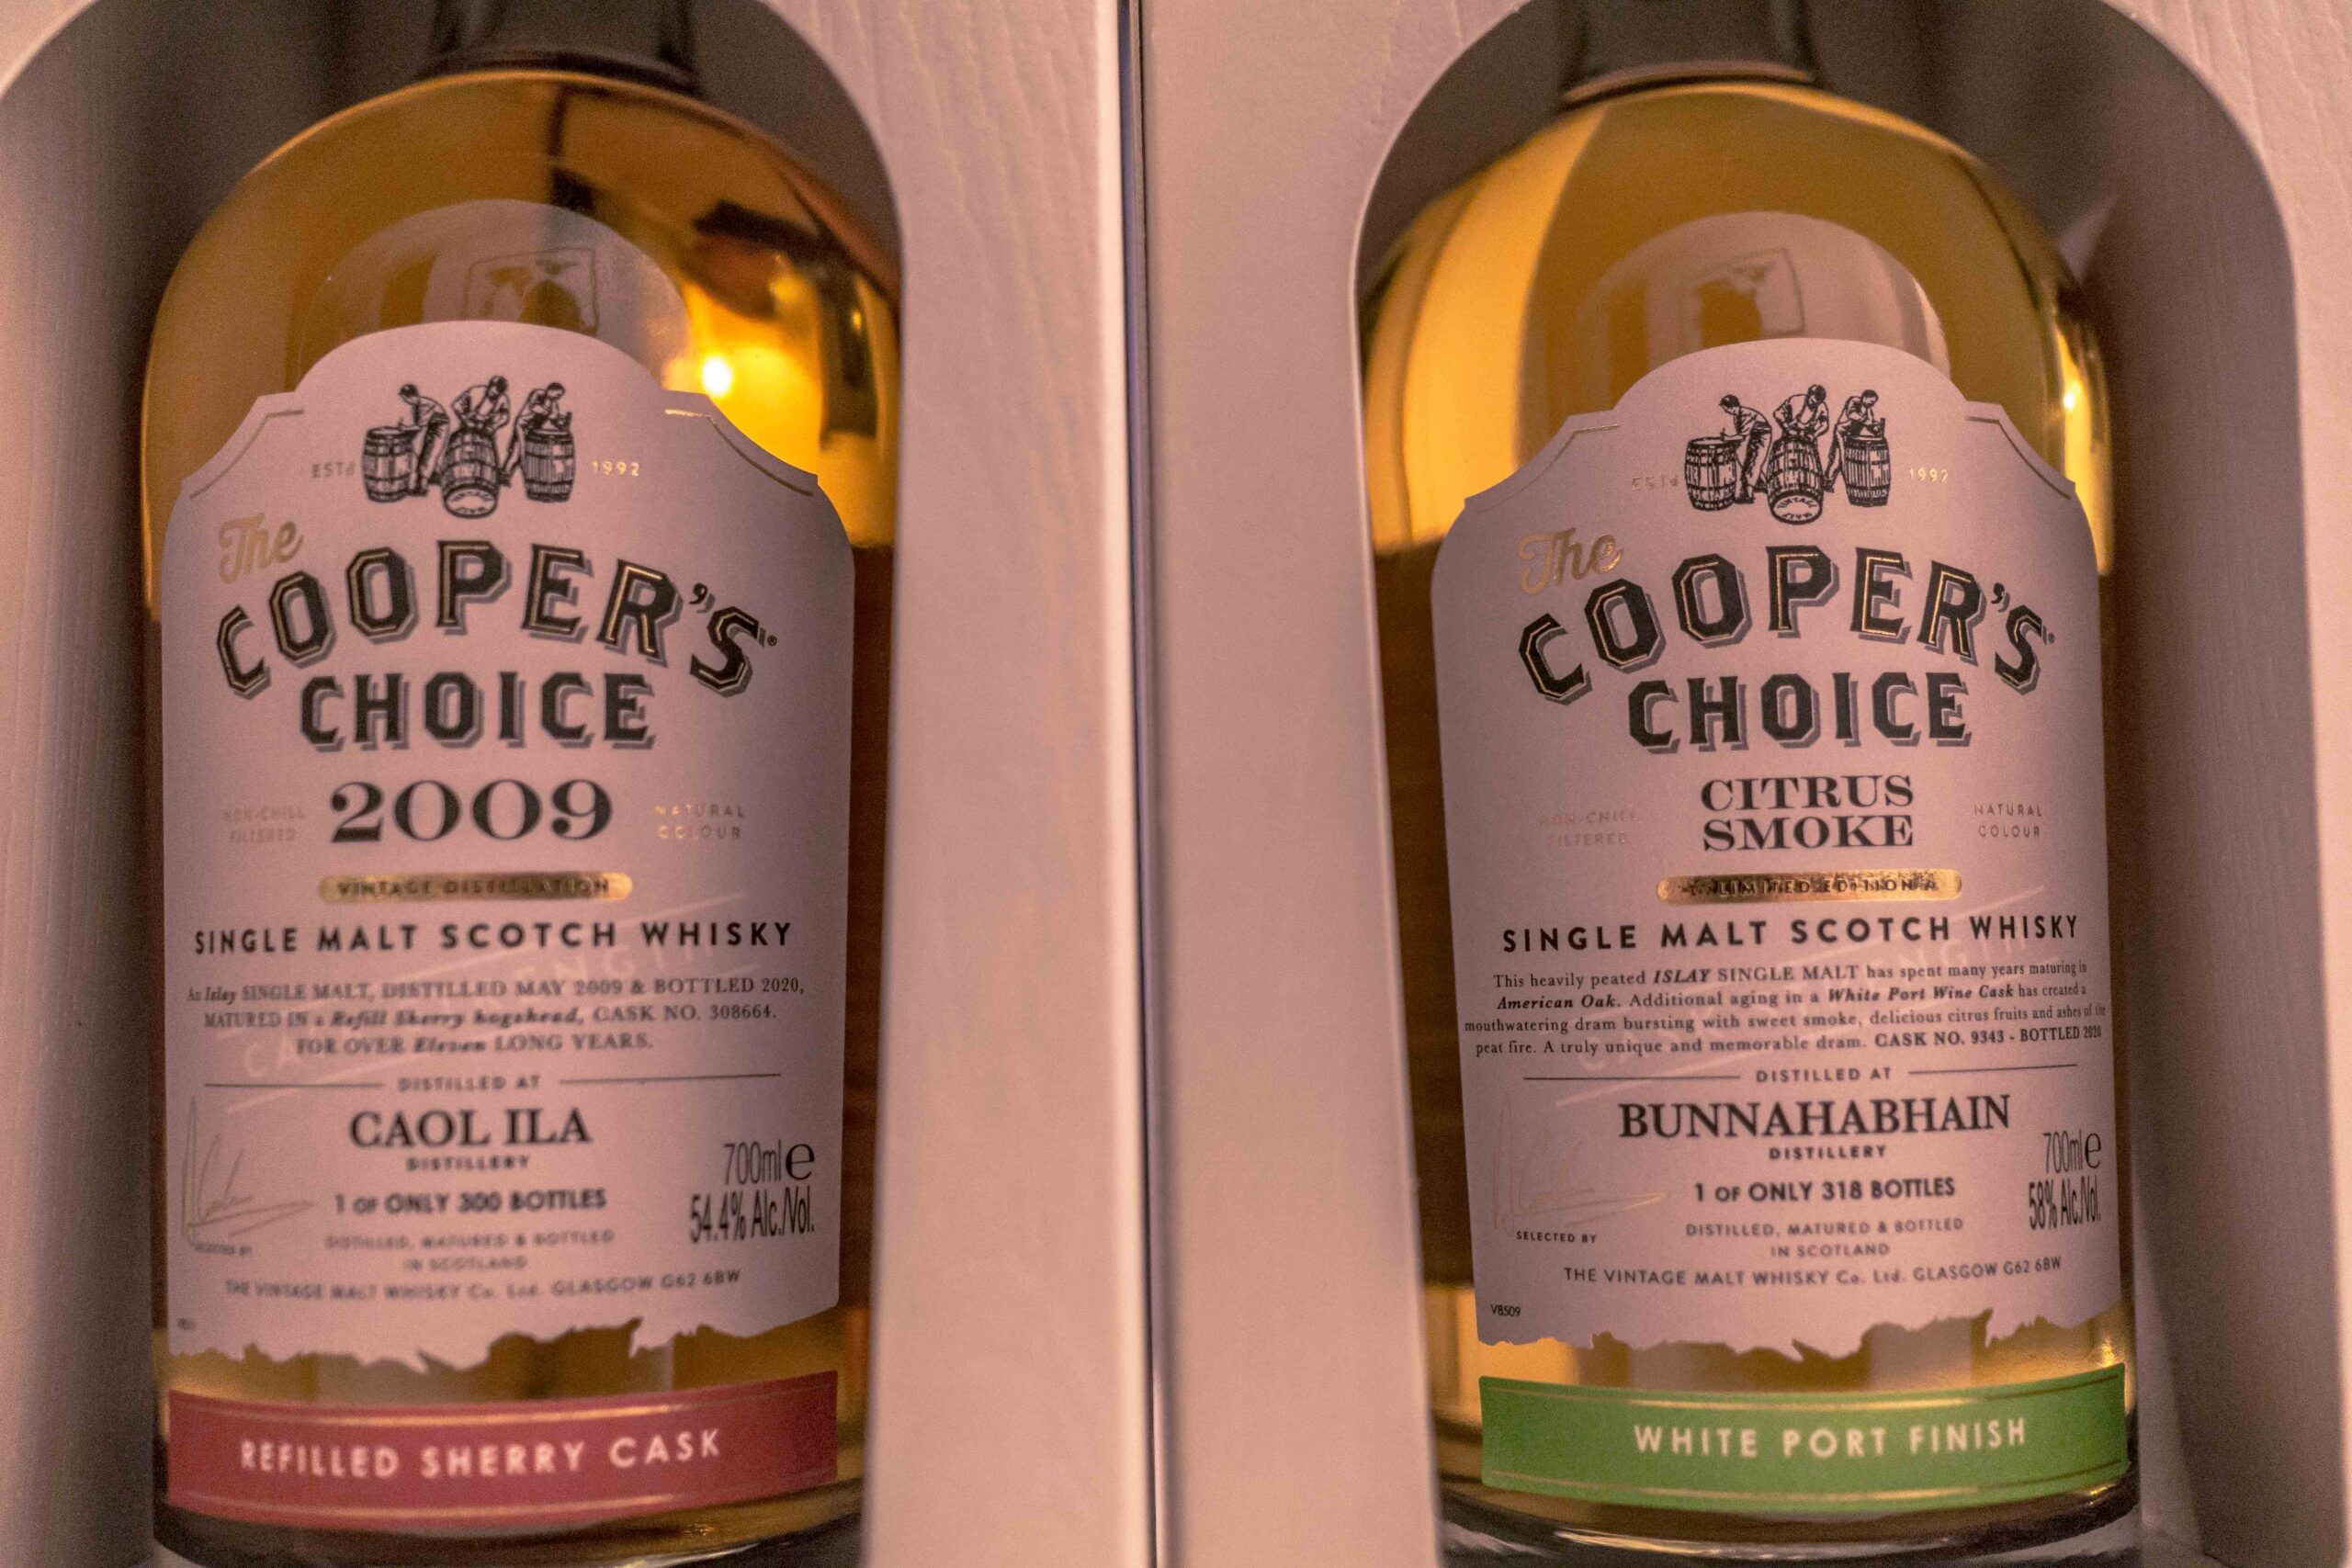 Two new expressions from Cooper's choice